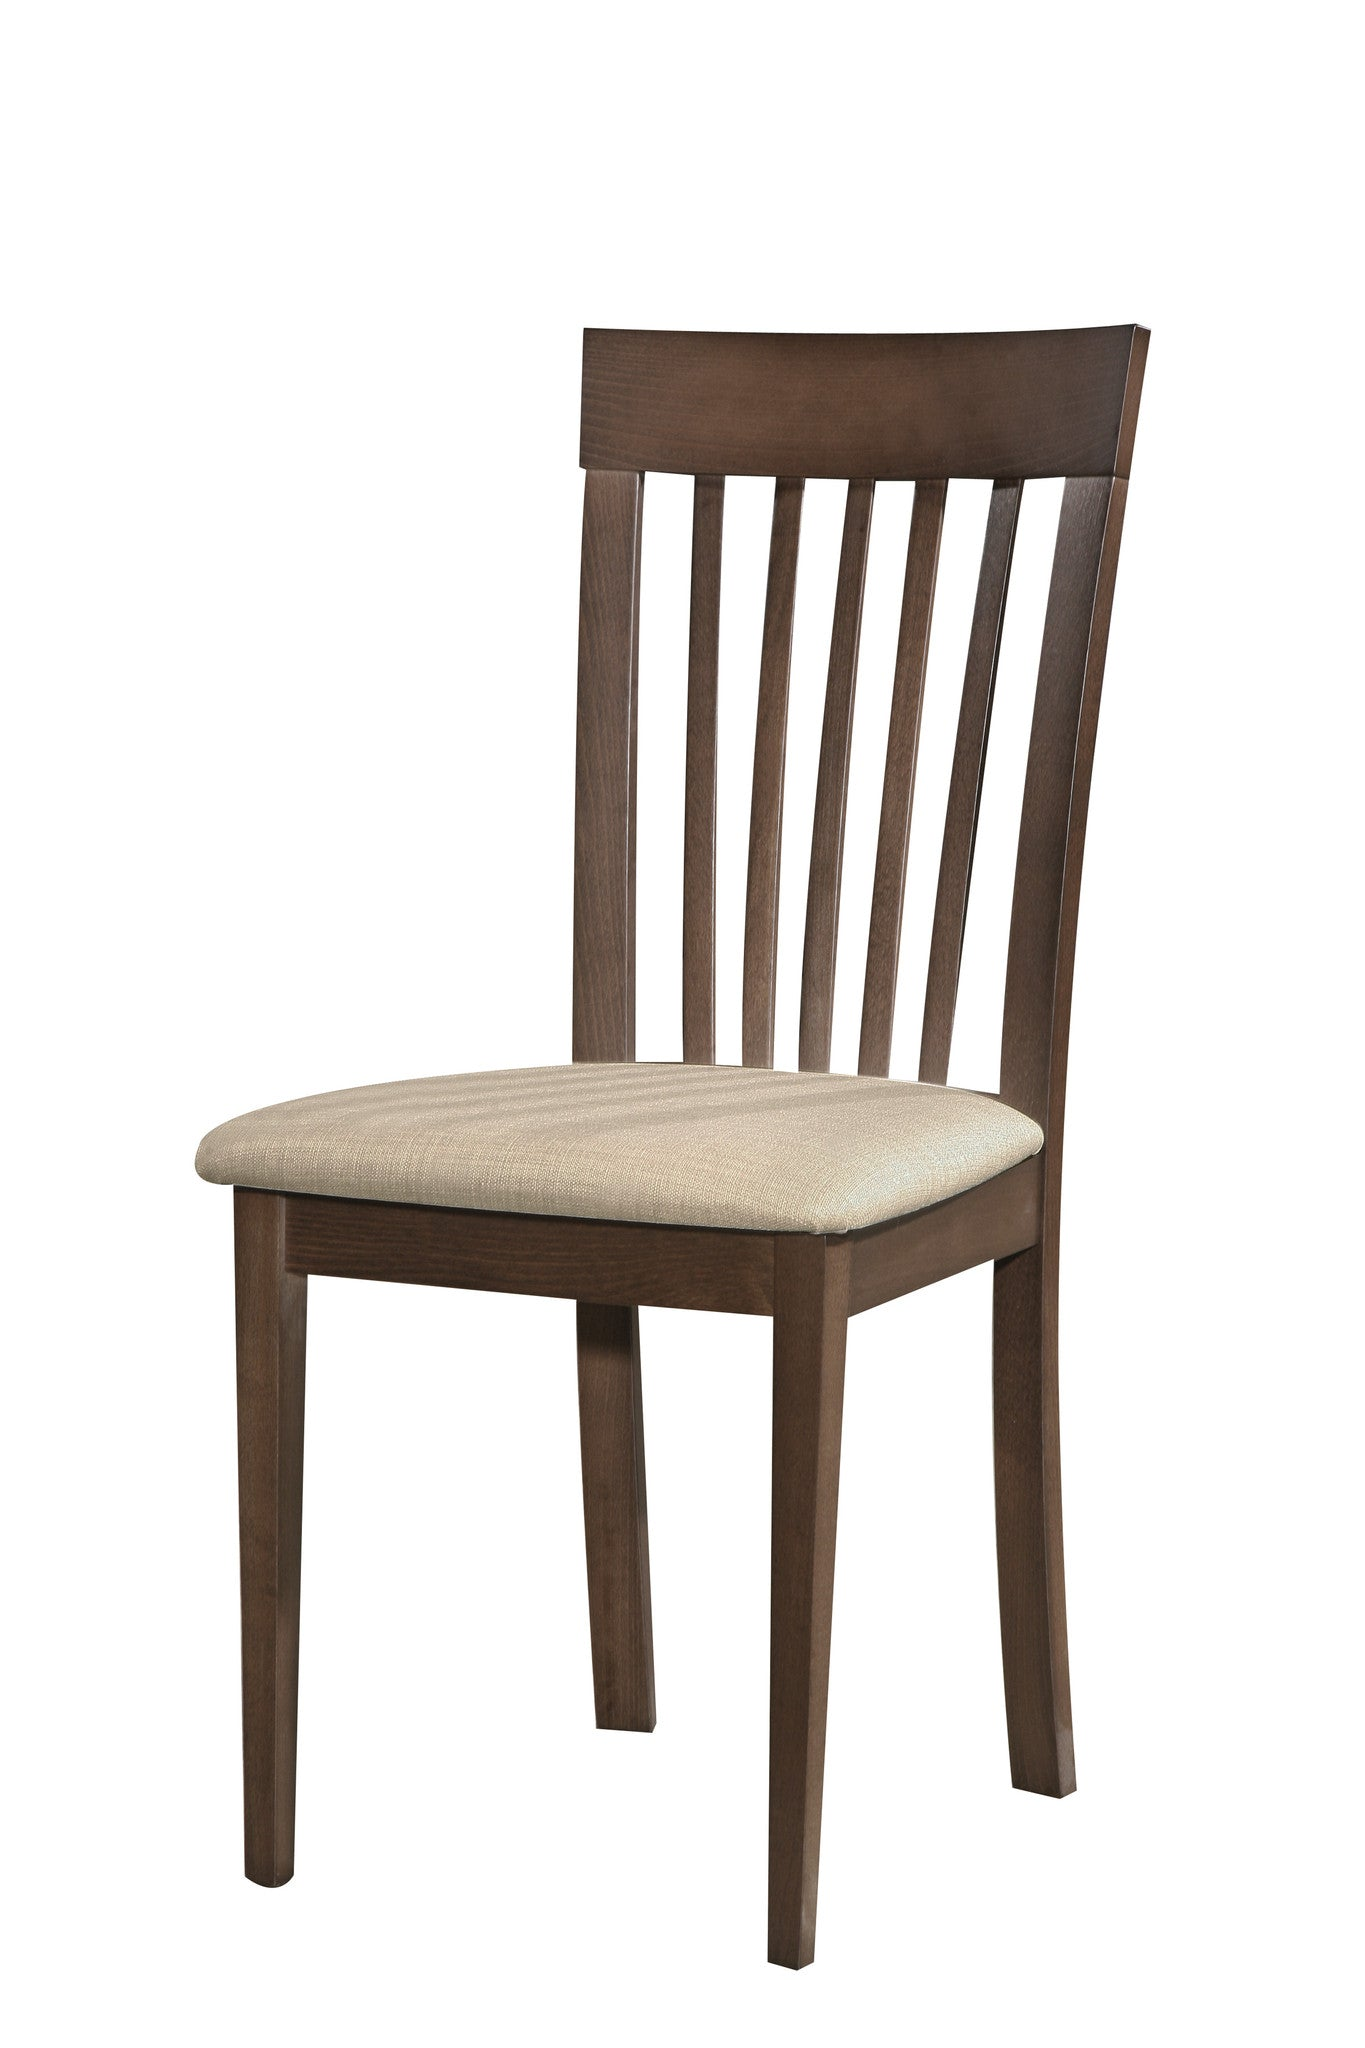 Dining Room Chair Repair Kits Onsite Furniture Repair Atlanta Ga Kells Glass Wood Dining Table